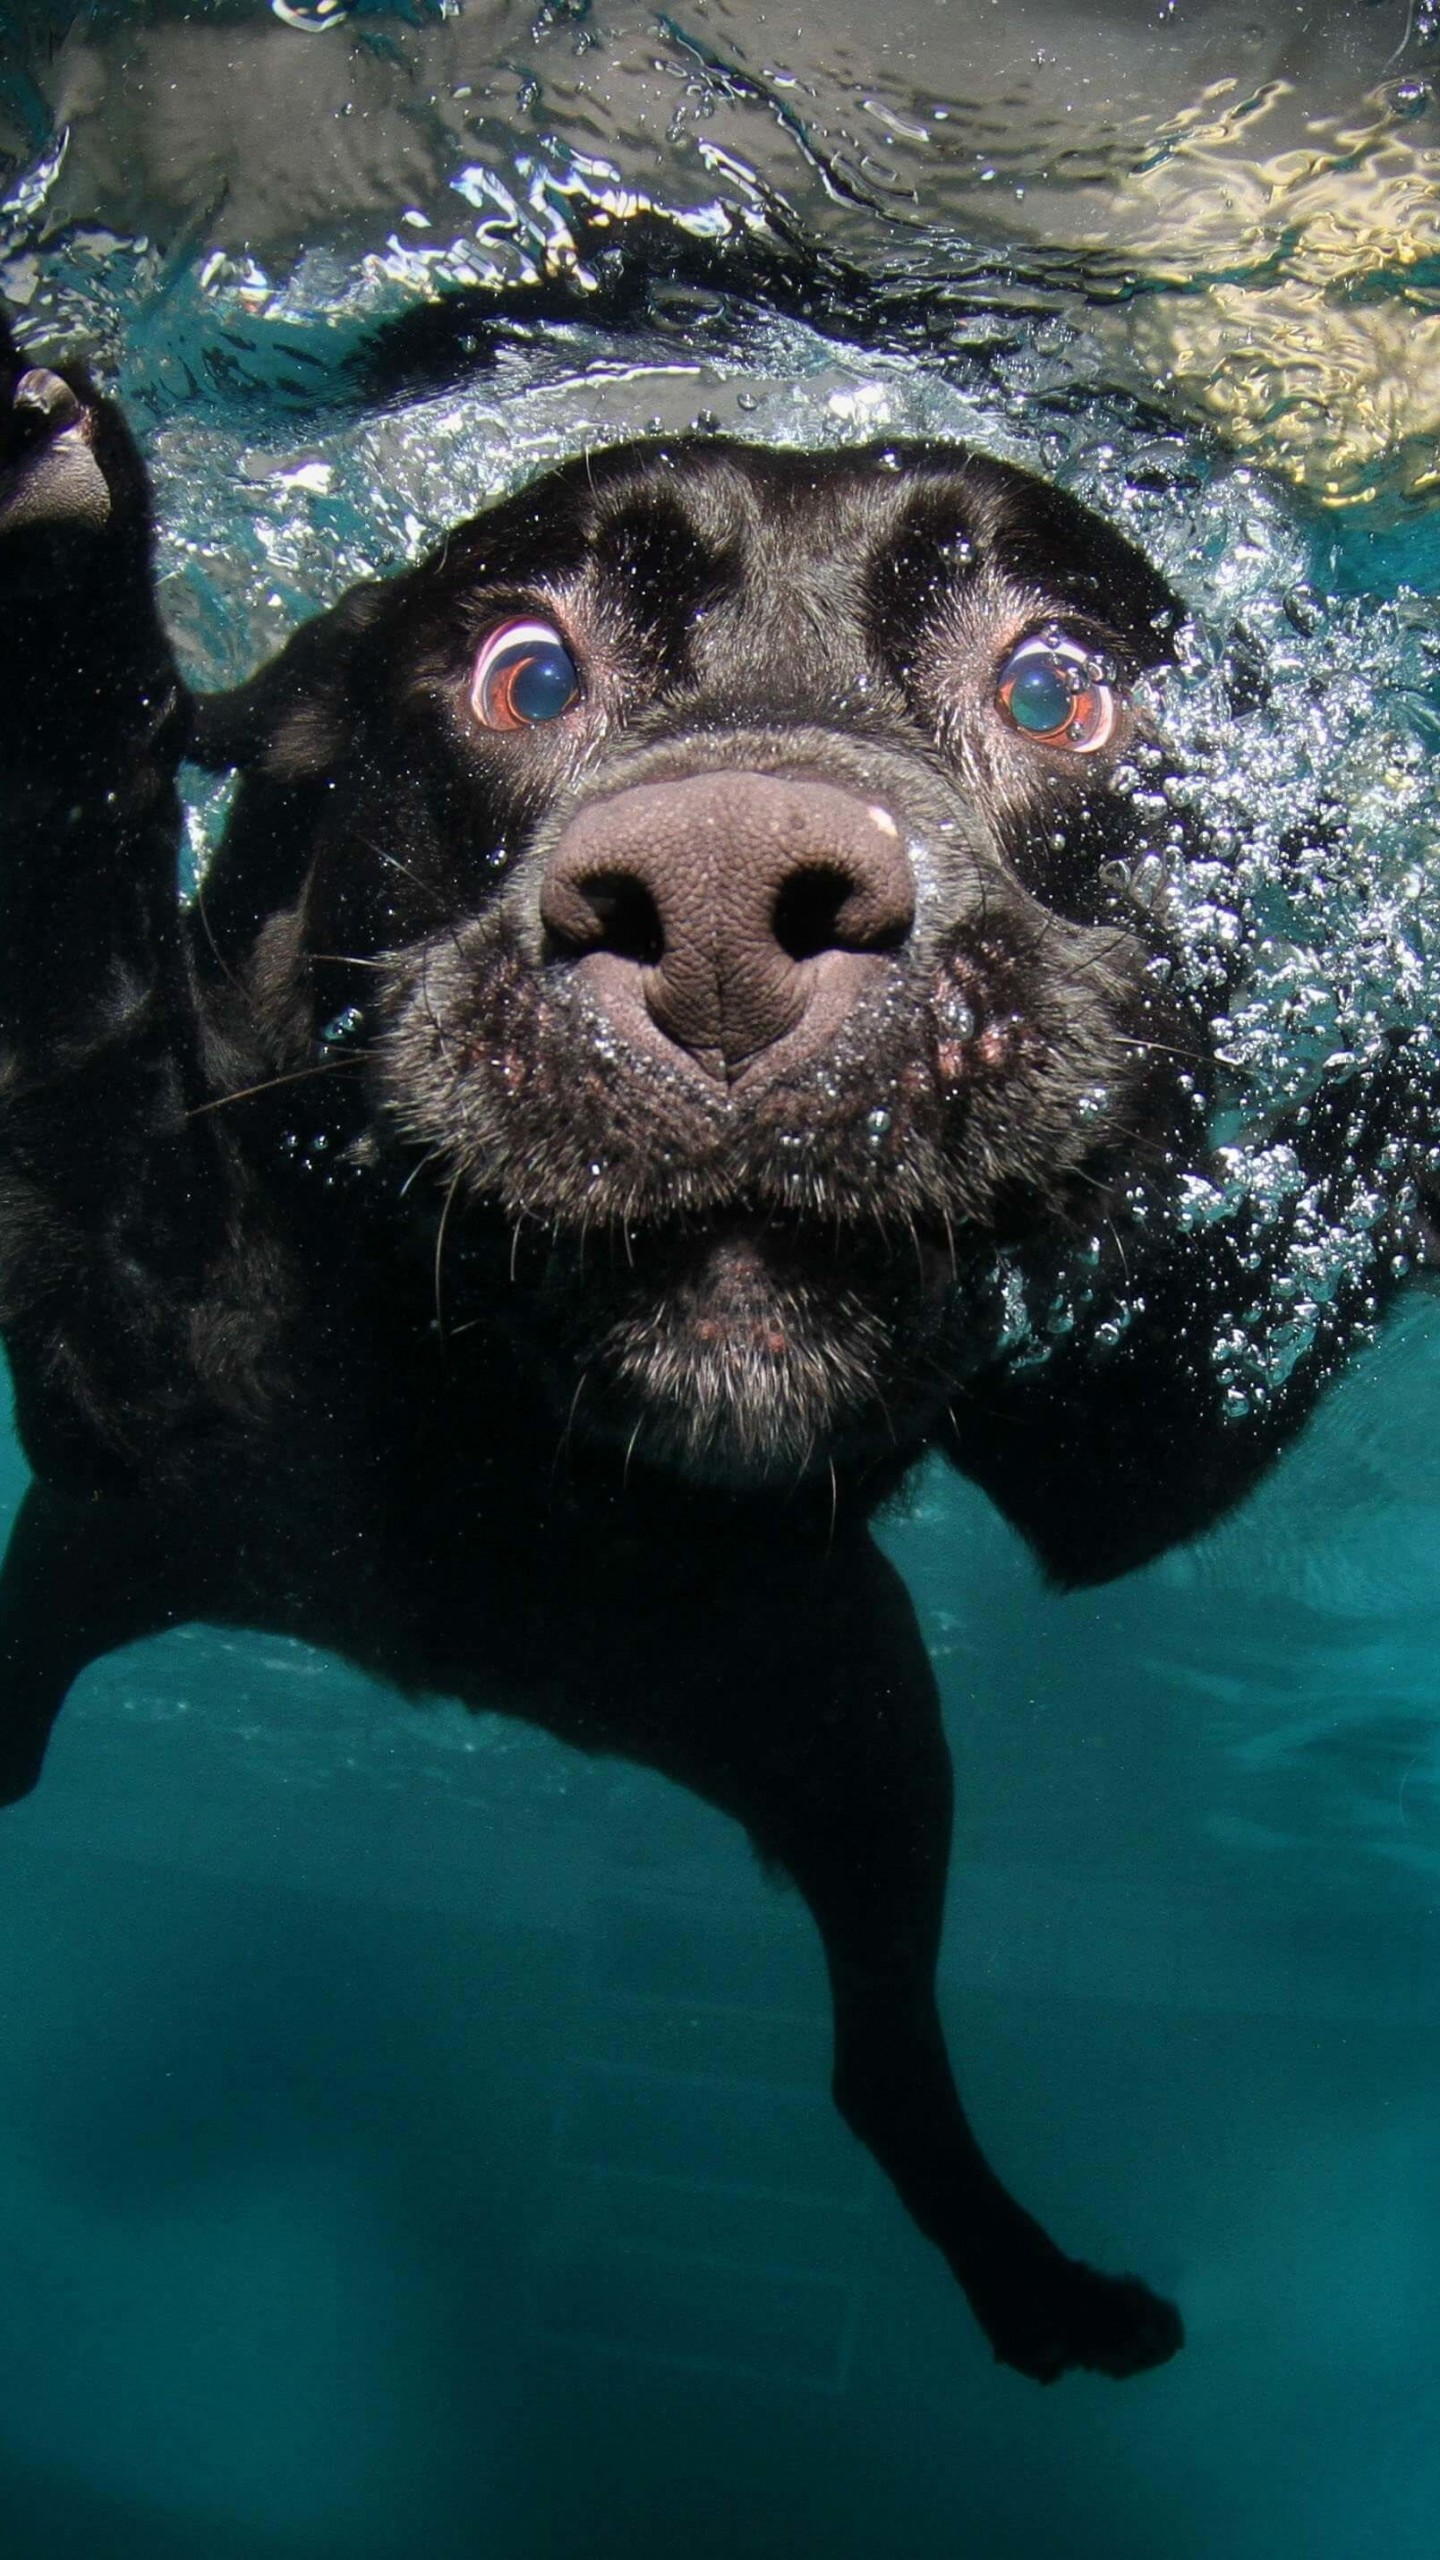 Underwater Dog Wallpaper for SAMSUNG Galaxy Note 4